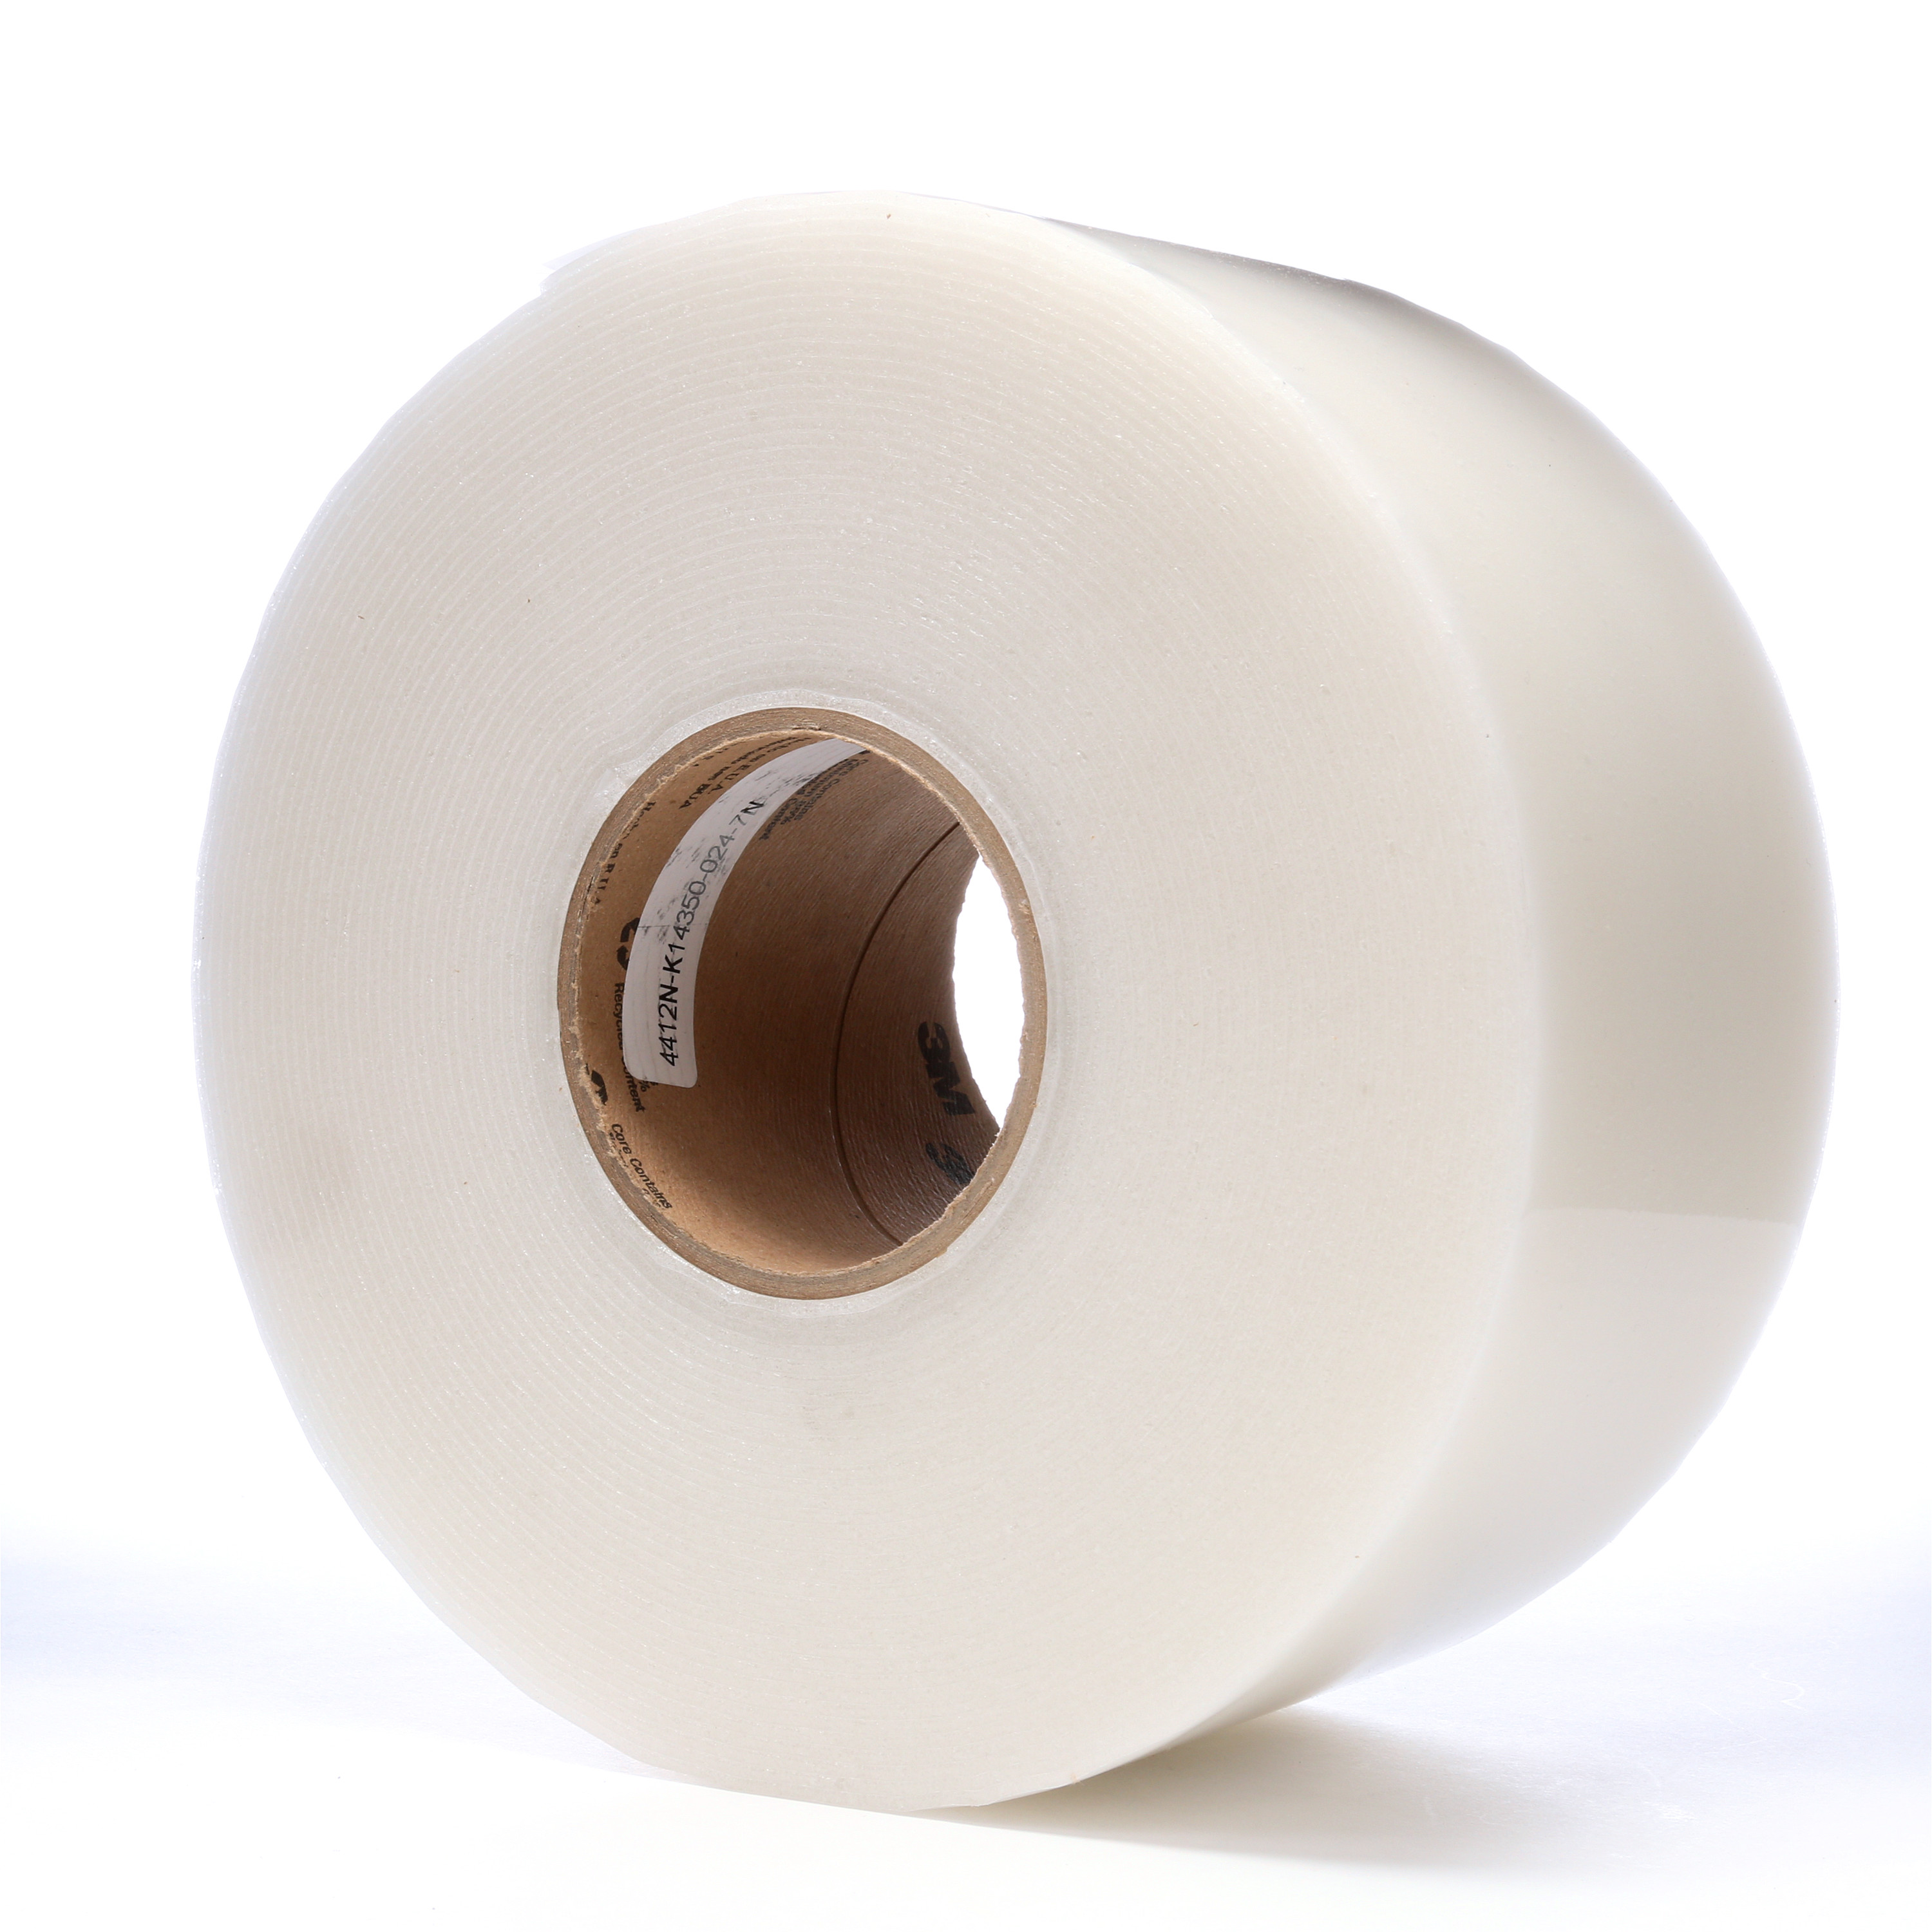 3M™ Extreme Sealing Tape 4412N, Translucent, 4 in x 18 yd, 80 mil, 2 rolls per case